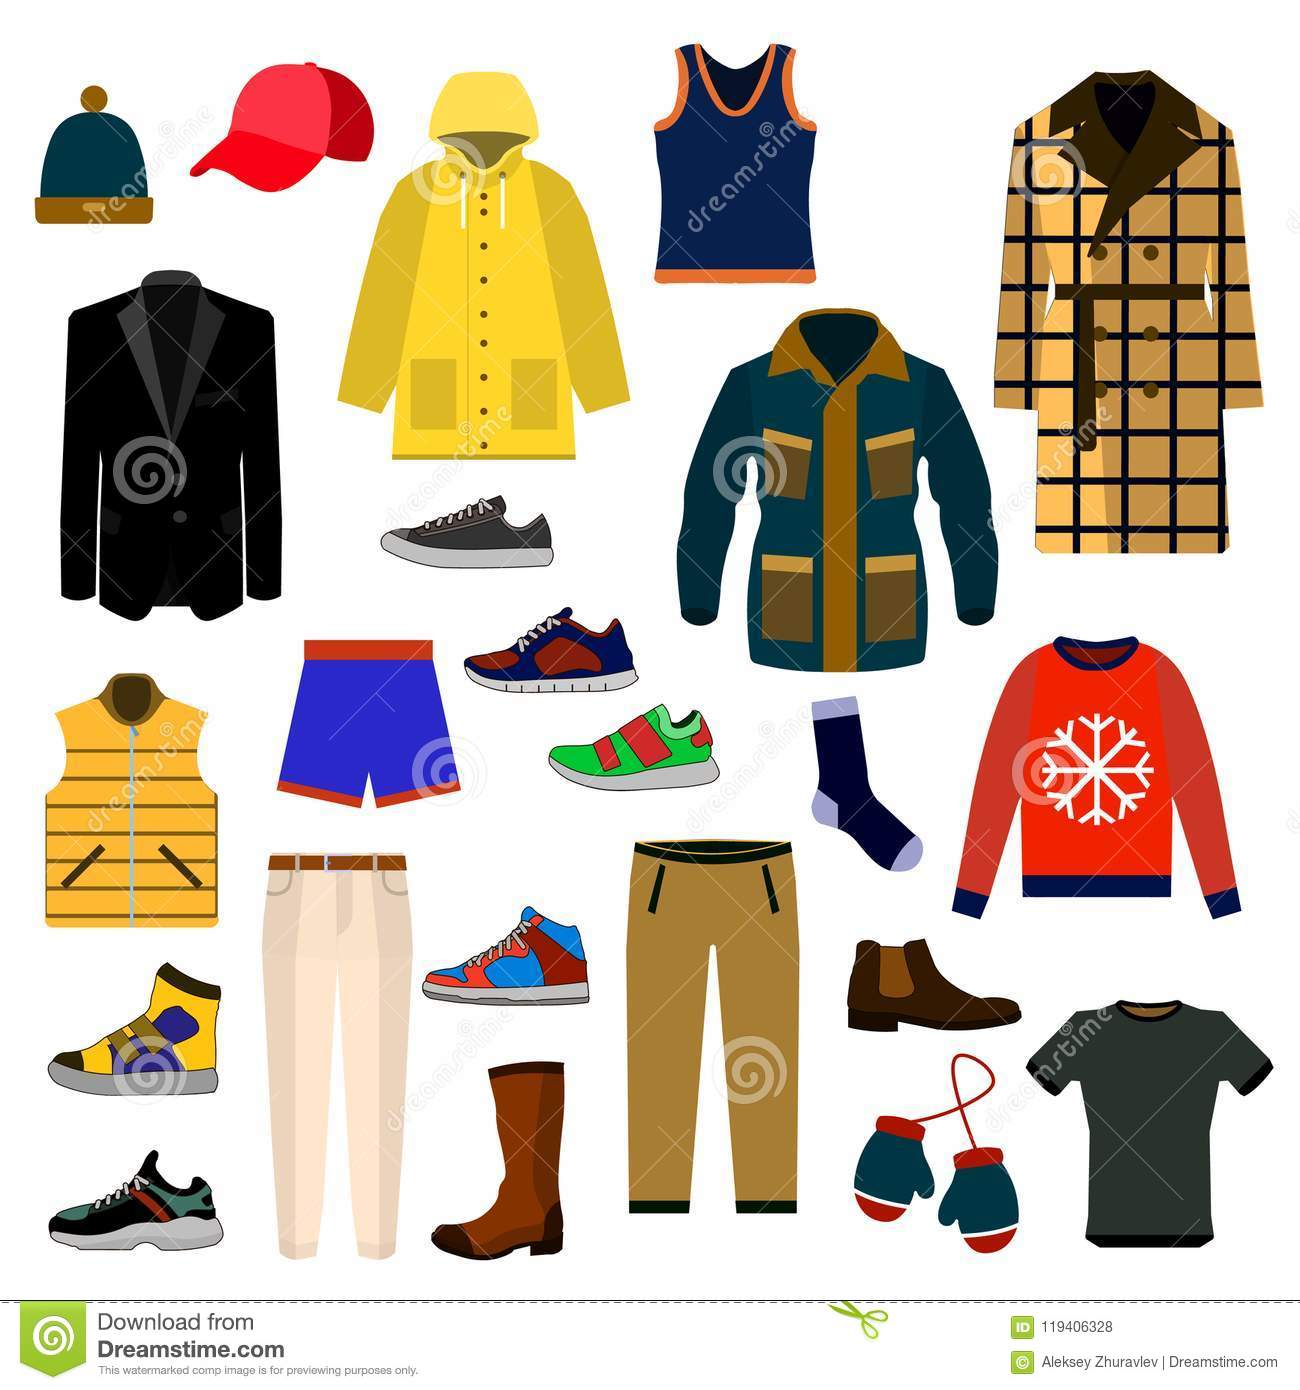 Clothes and accessories Fashion big icon set. Men clothes vector illustration icon set.